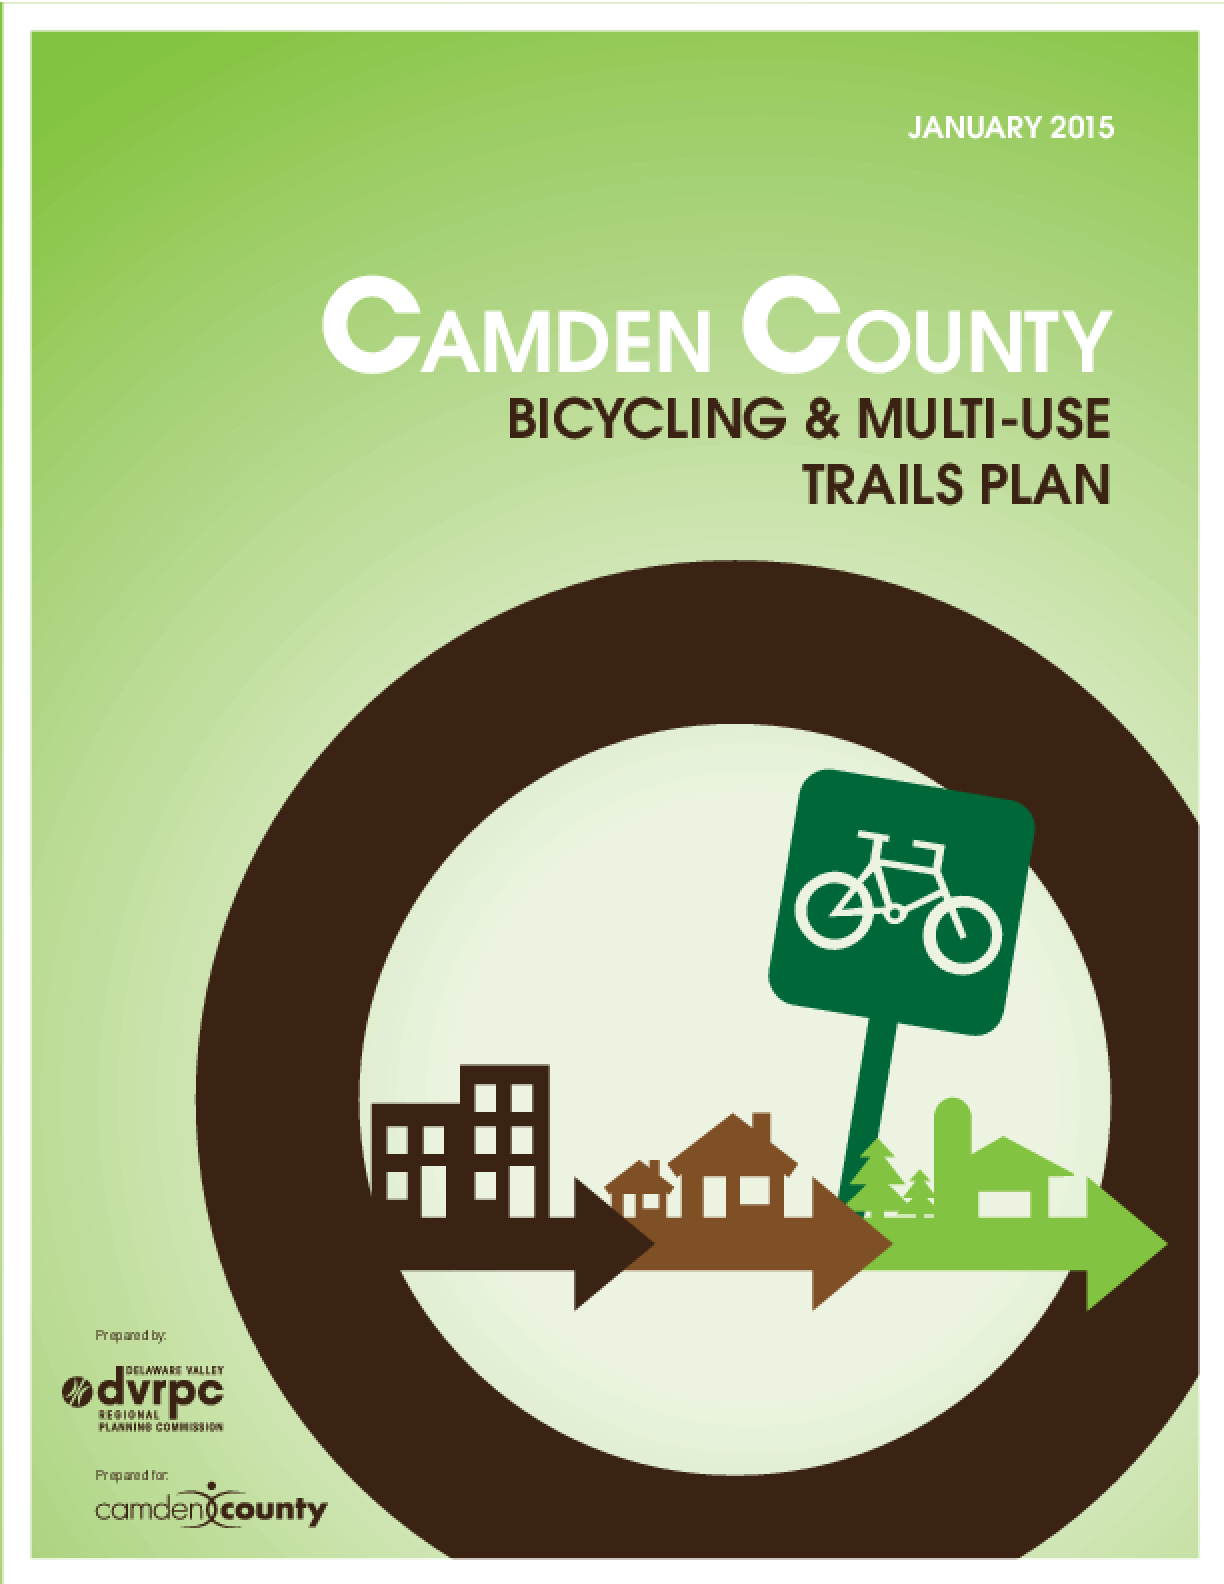 Camden County Bicycling and Multi-Use Trails Plan